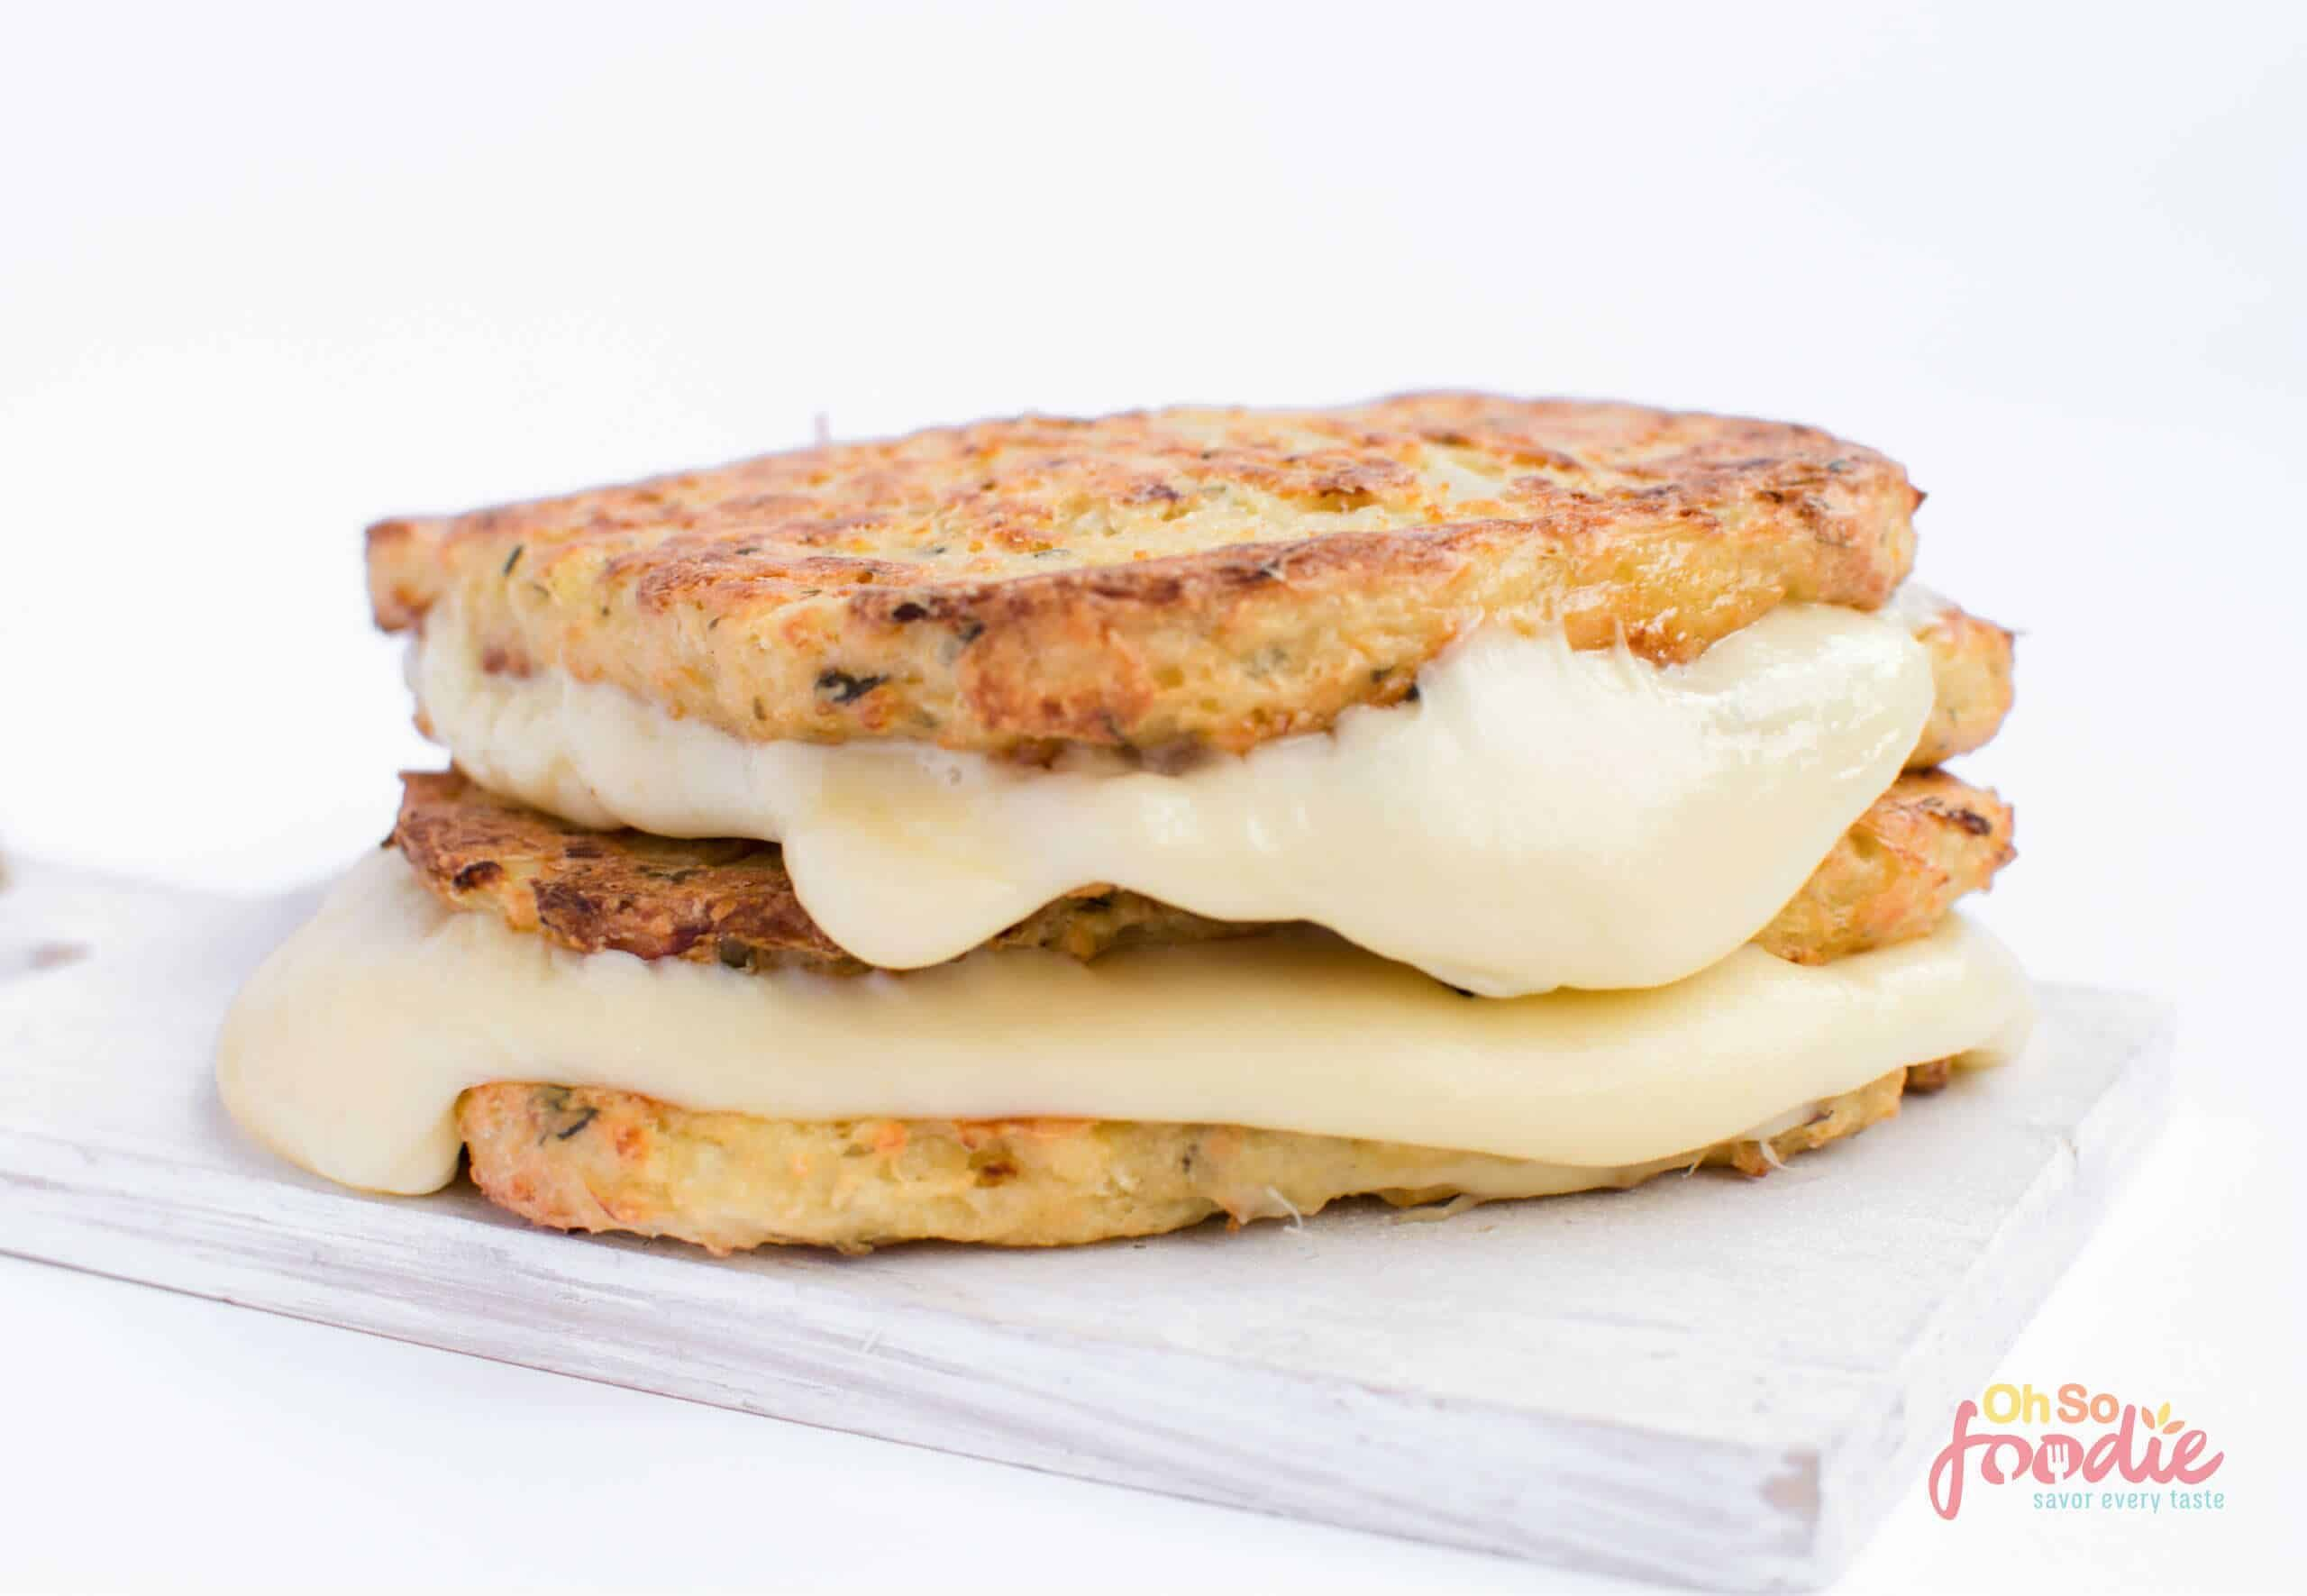 Keto Grilled Cheese Made Cauliflower Bread 5 Ingredients Oh So